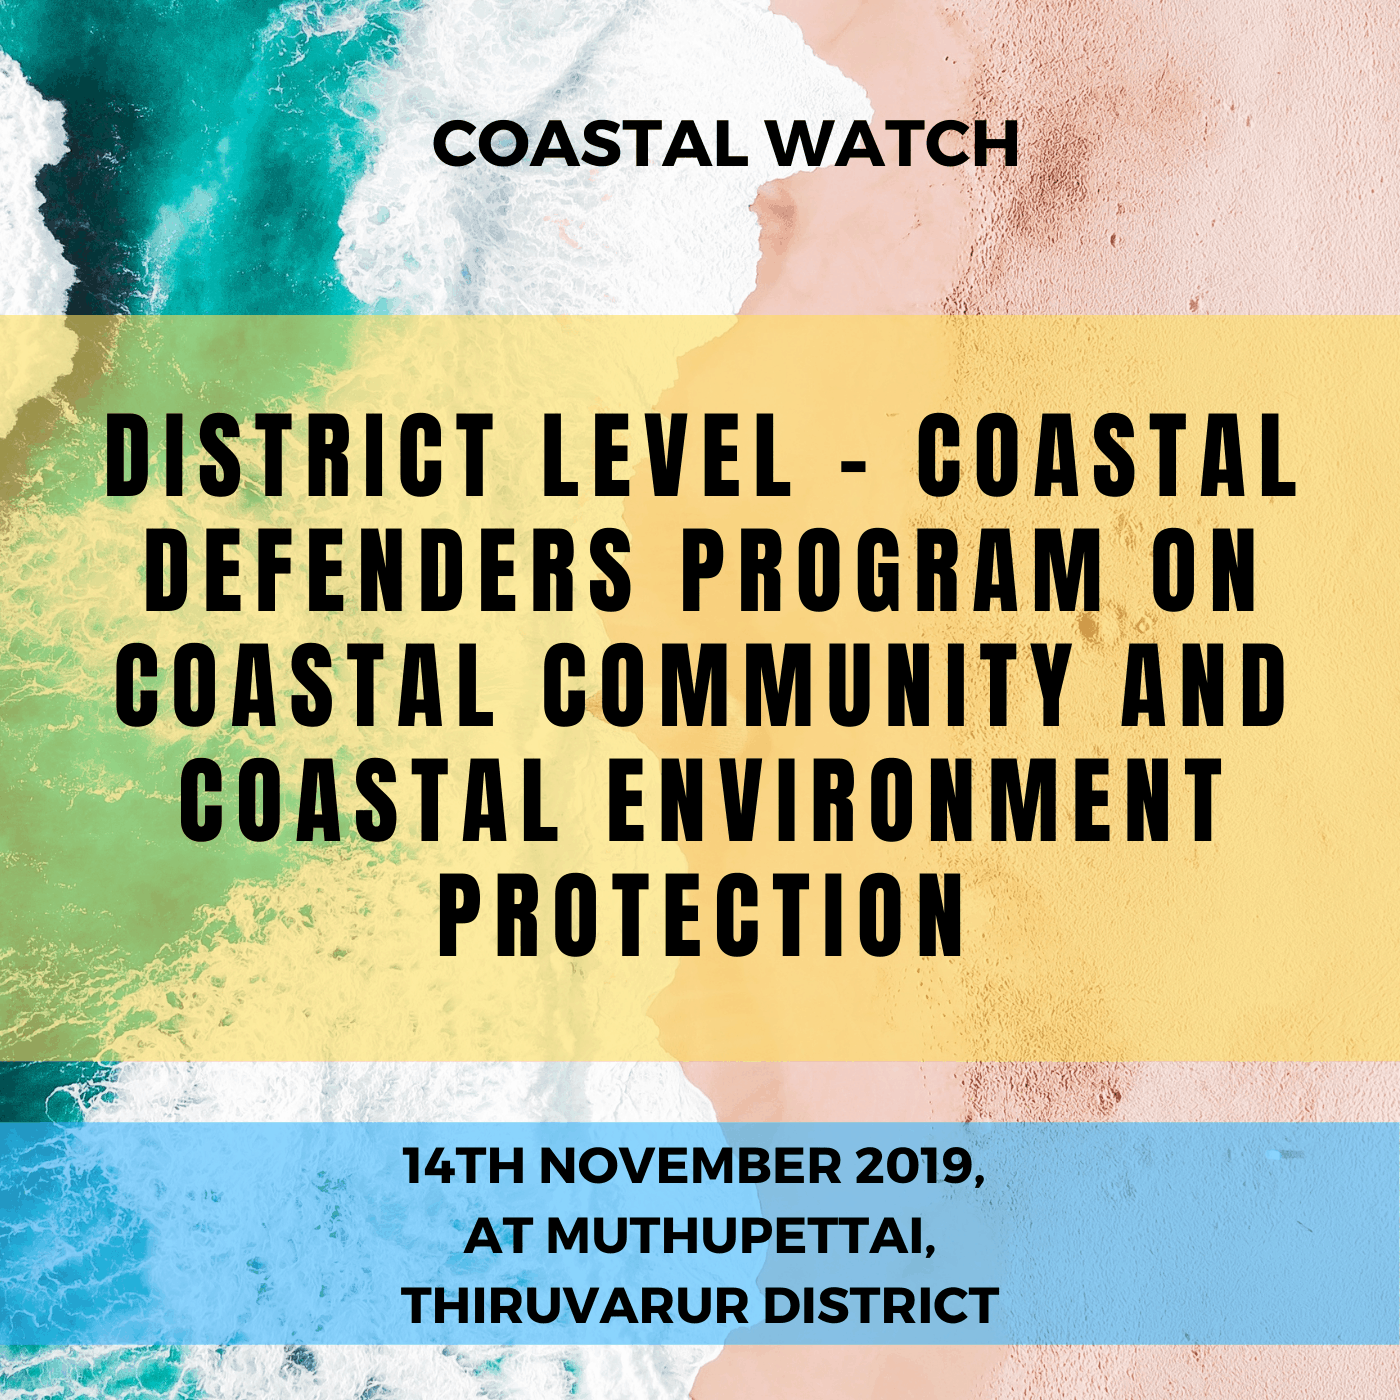 District Level – Coastal Defenders Program on Coastal Community and Coastal Environment Protection